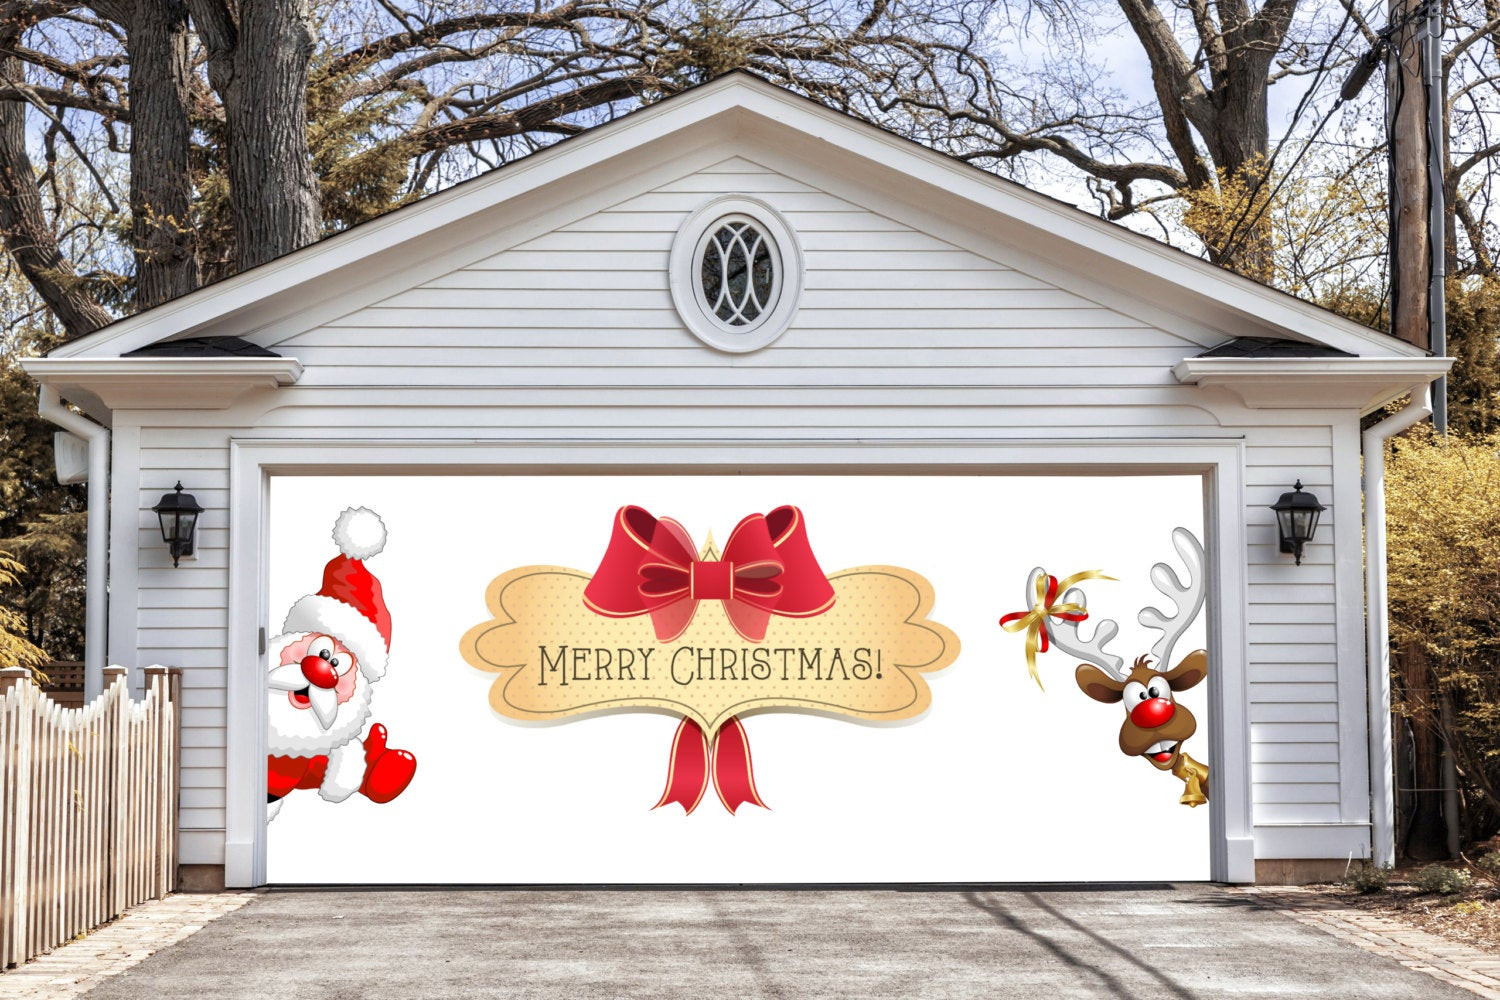 Christmas Garage Door Covers Luxury Merry Christmas Garage Door Covers 3d Banners by Decalhouse